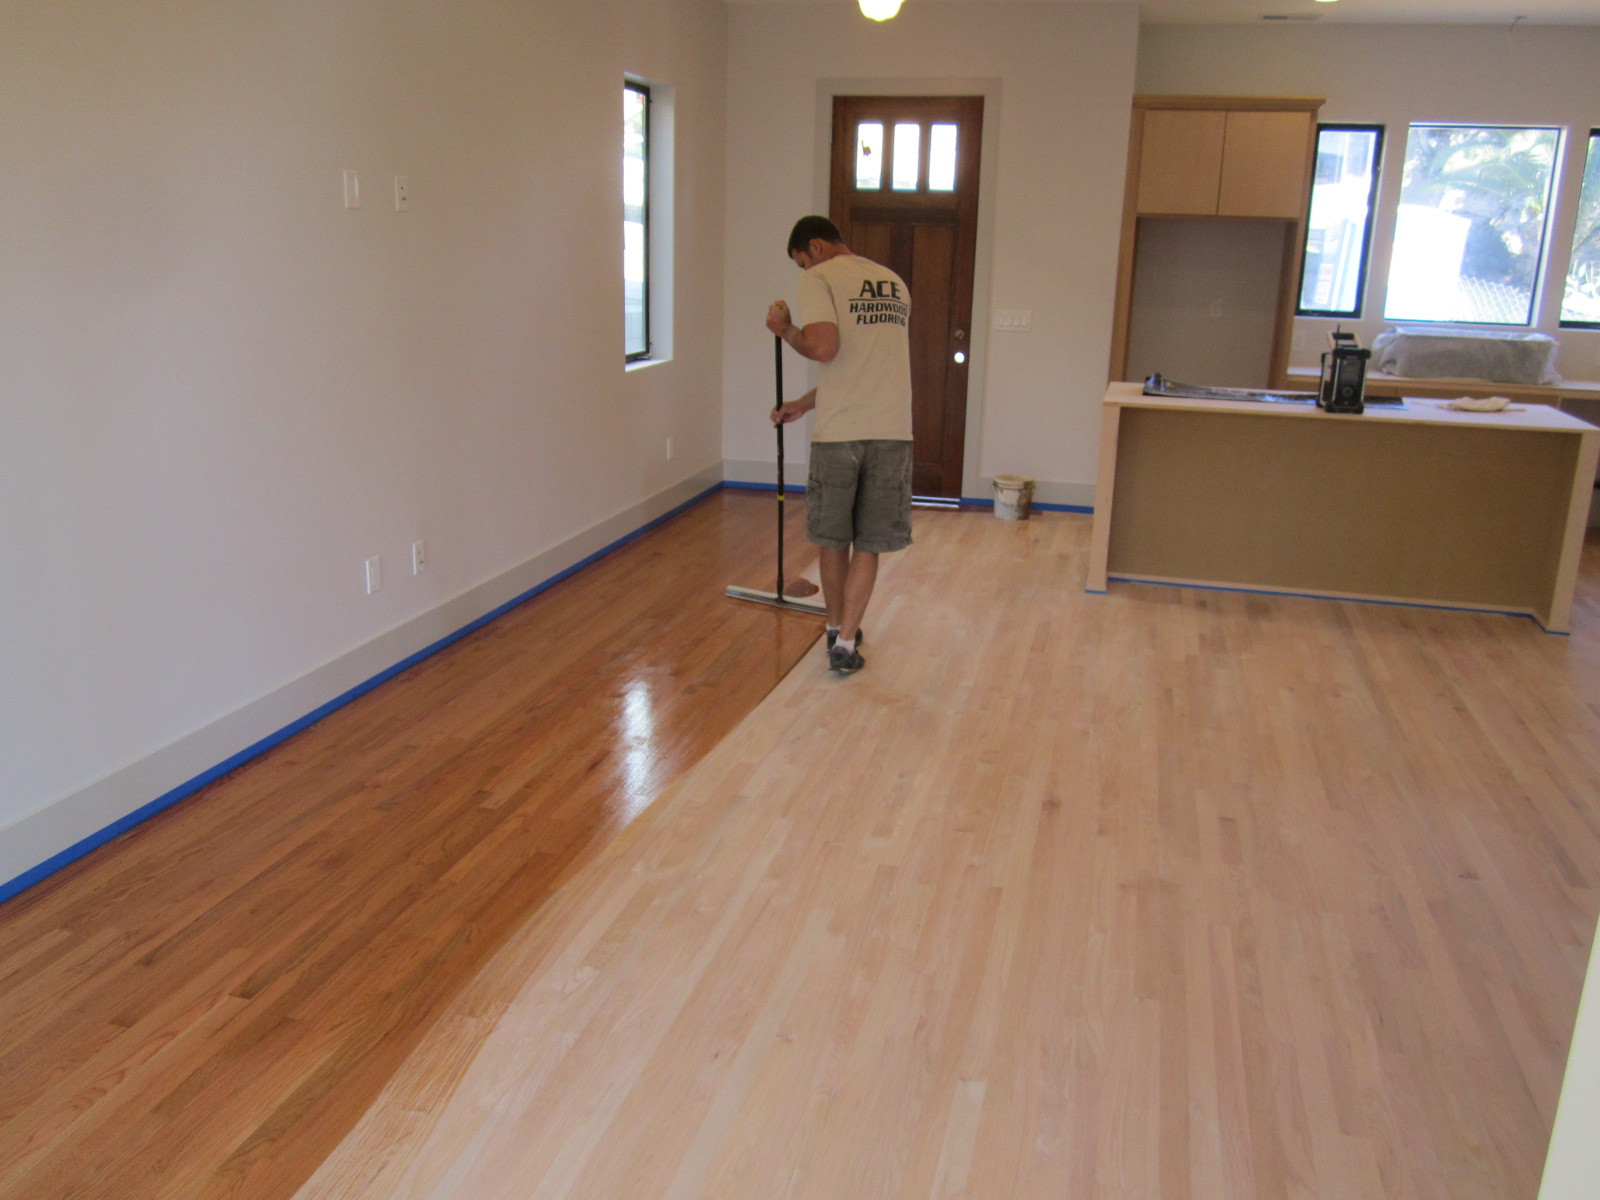 Hardwood Floor Refinishing Richmond Va Of Hardwood Floor Refinishing Richmond Va Floor with Regard to Hardwood Floor Refinishing Richmond Va Refinishing Hardwoodlooring Oldloors without Sanding Buffing Opt